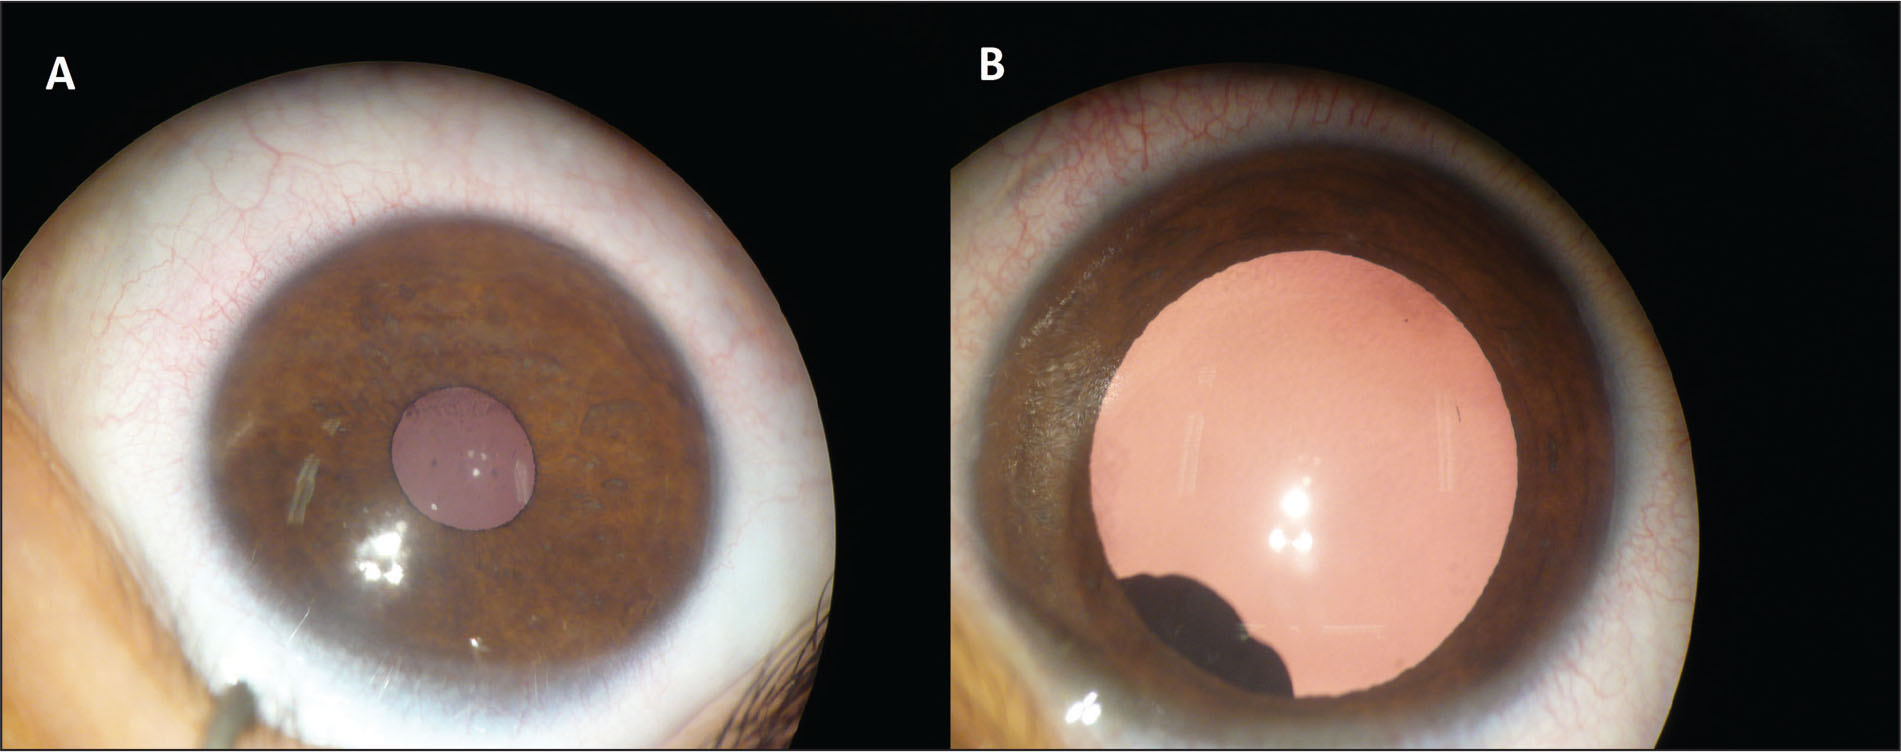 The anterior segment. (A) Before dilatation, the anterior segment seems be normal and does not show any abnormal structure. (B) After dilation, the pigmented cyst becomes visible by overflowing the pupillary contour, but not obstructing the visual axis. Note the polylobed character.